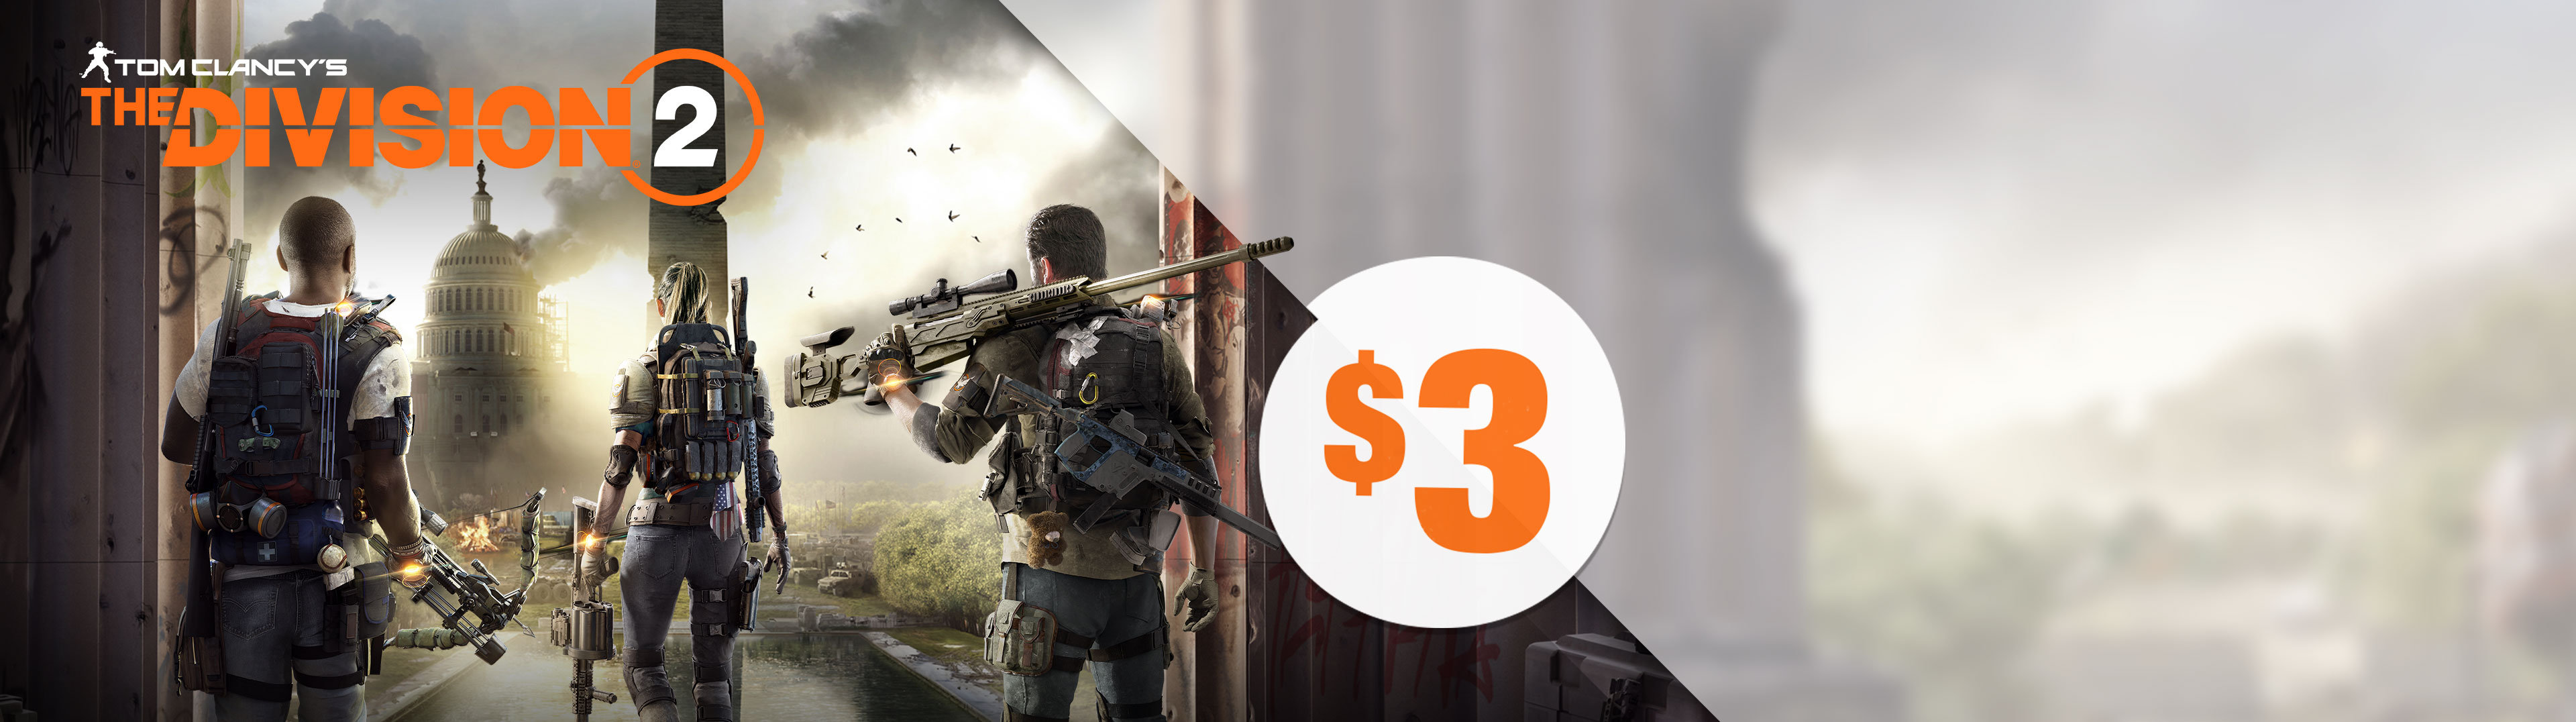 SCORE THE DIVISION 2 FOR $3 NOW